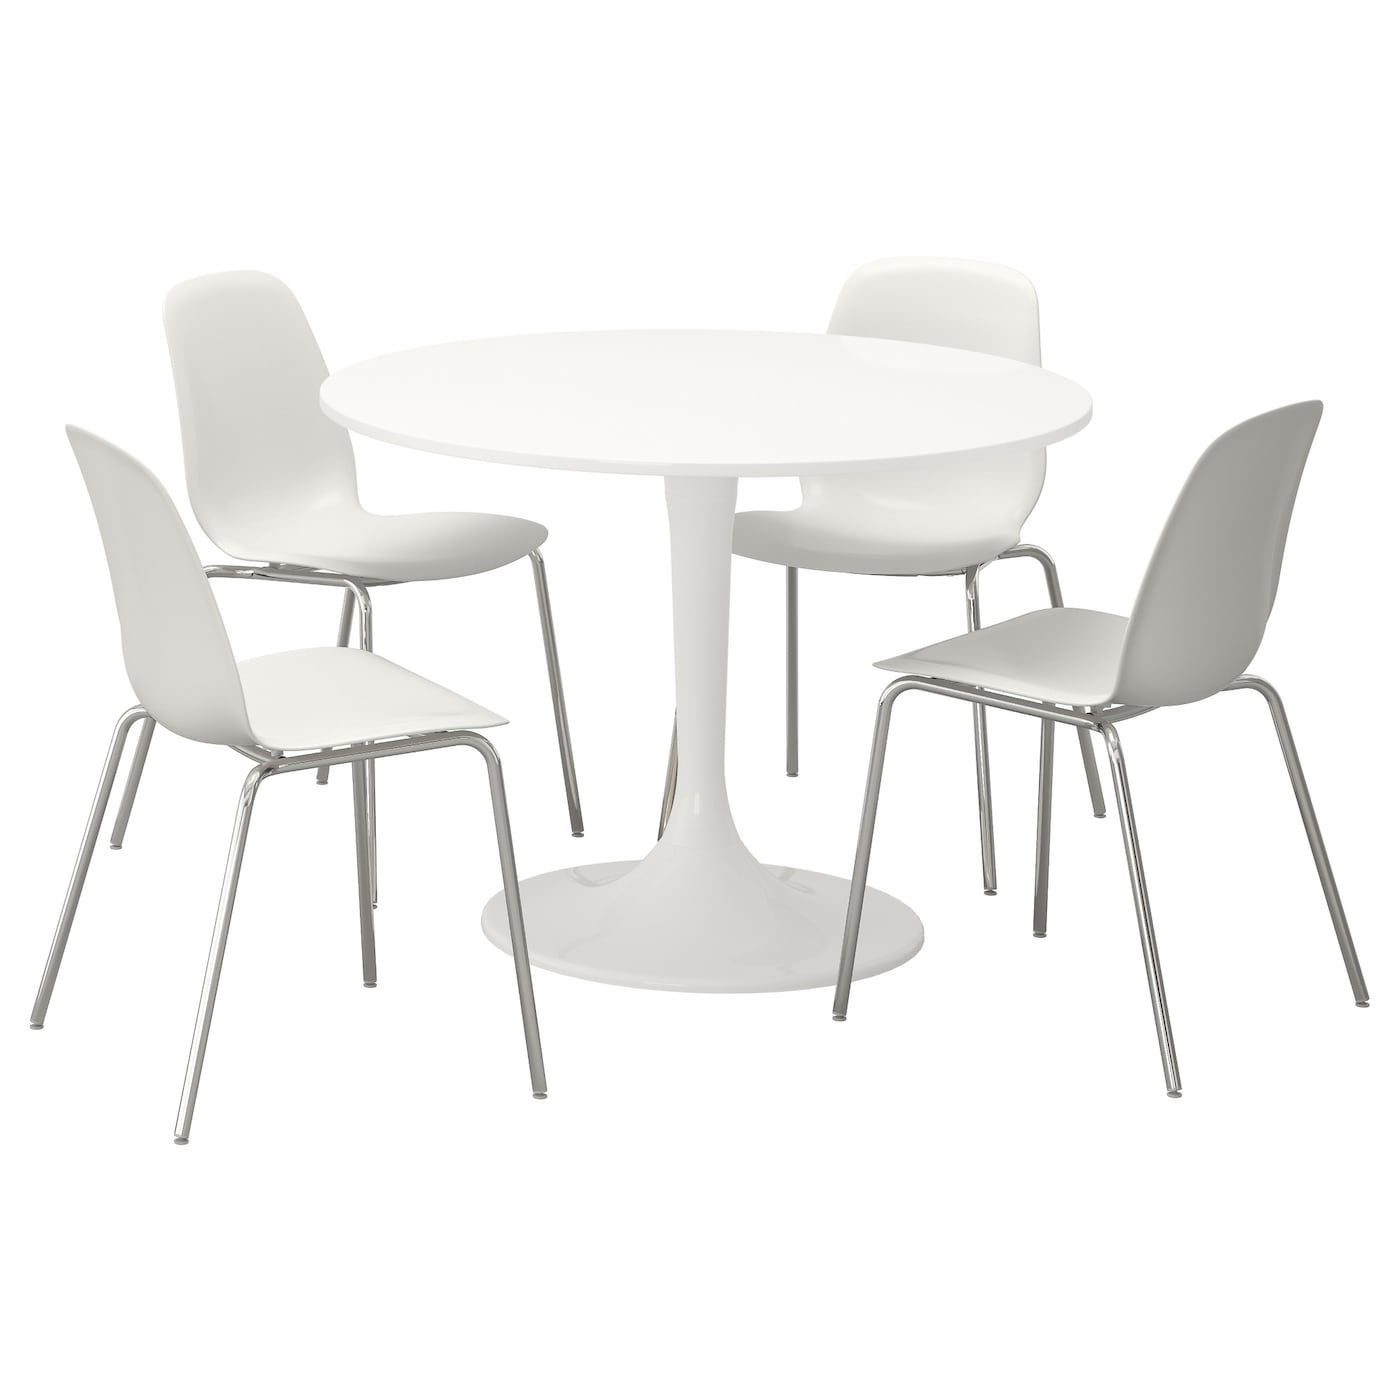 Docksta leifarne table and 4 chairs white white 105 cm ikea for Table ikea blanche